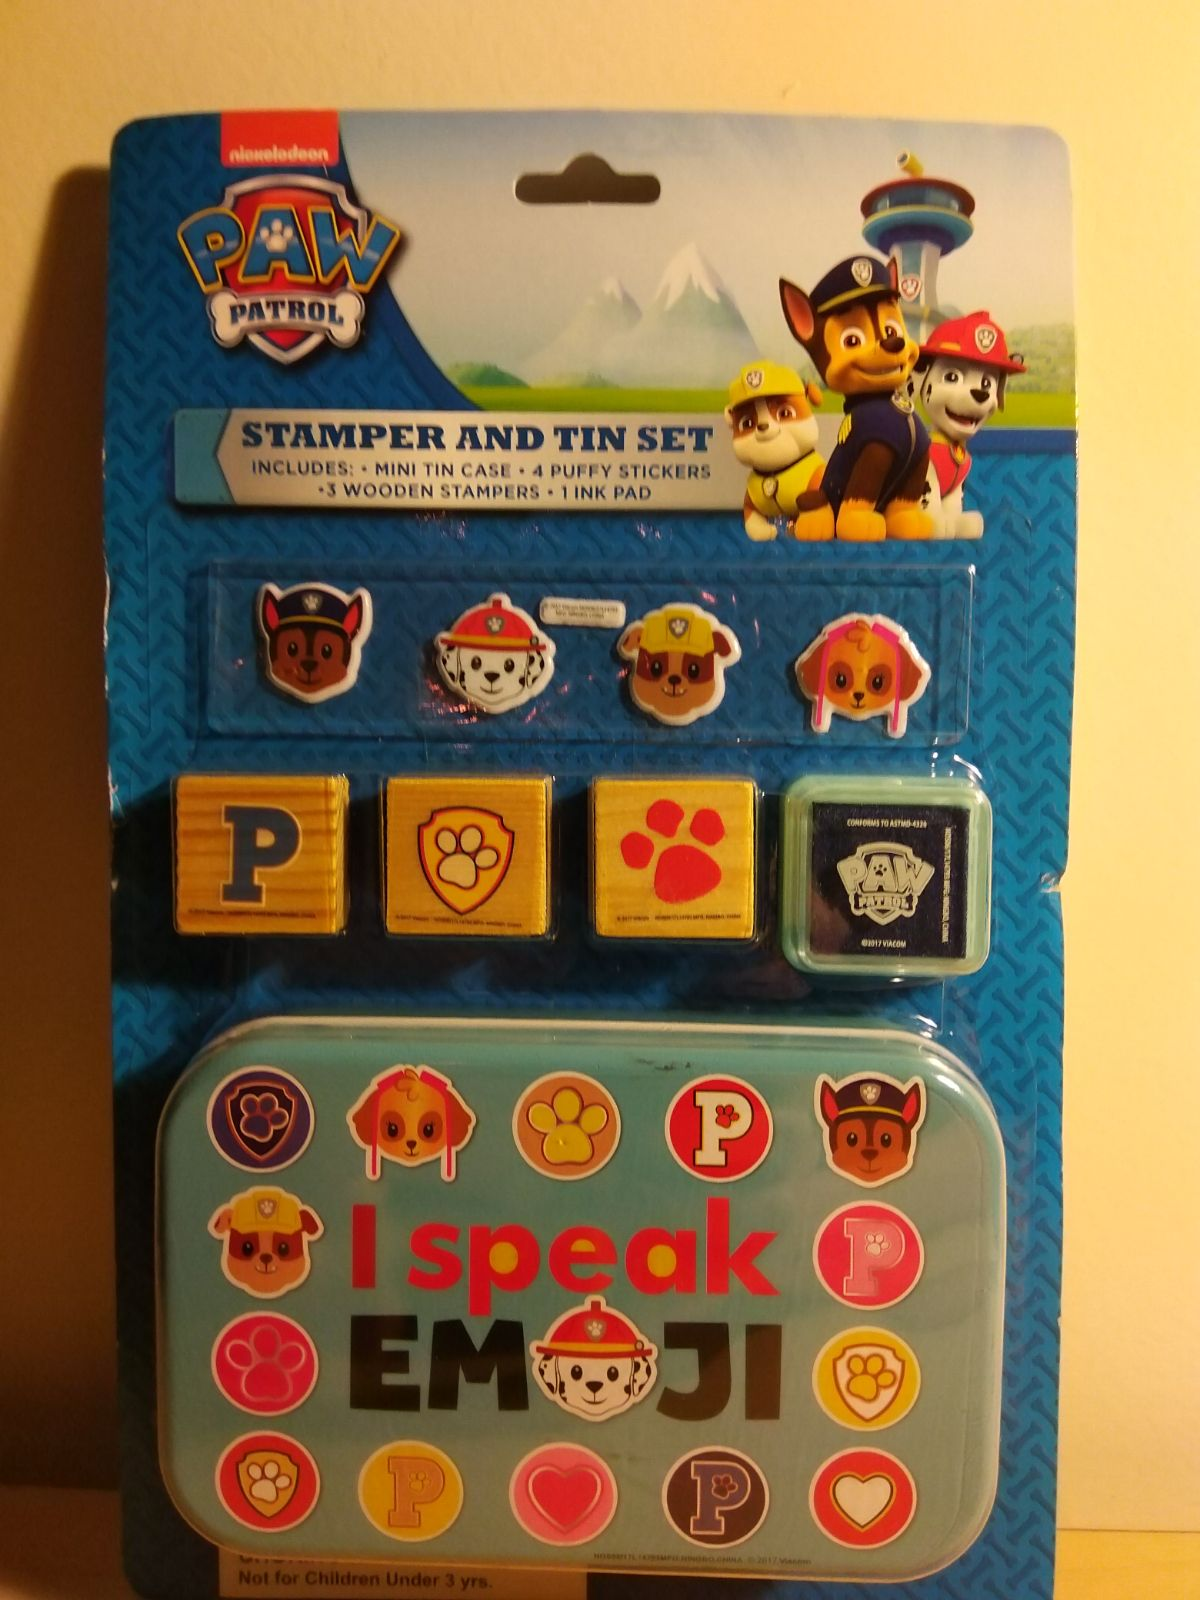 Paw patrol stamper and tin set